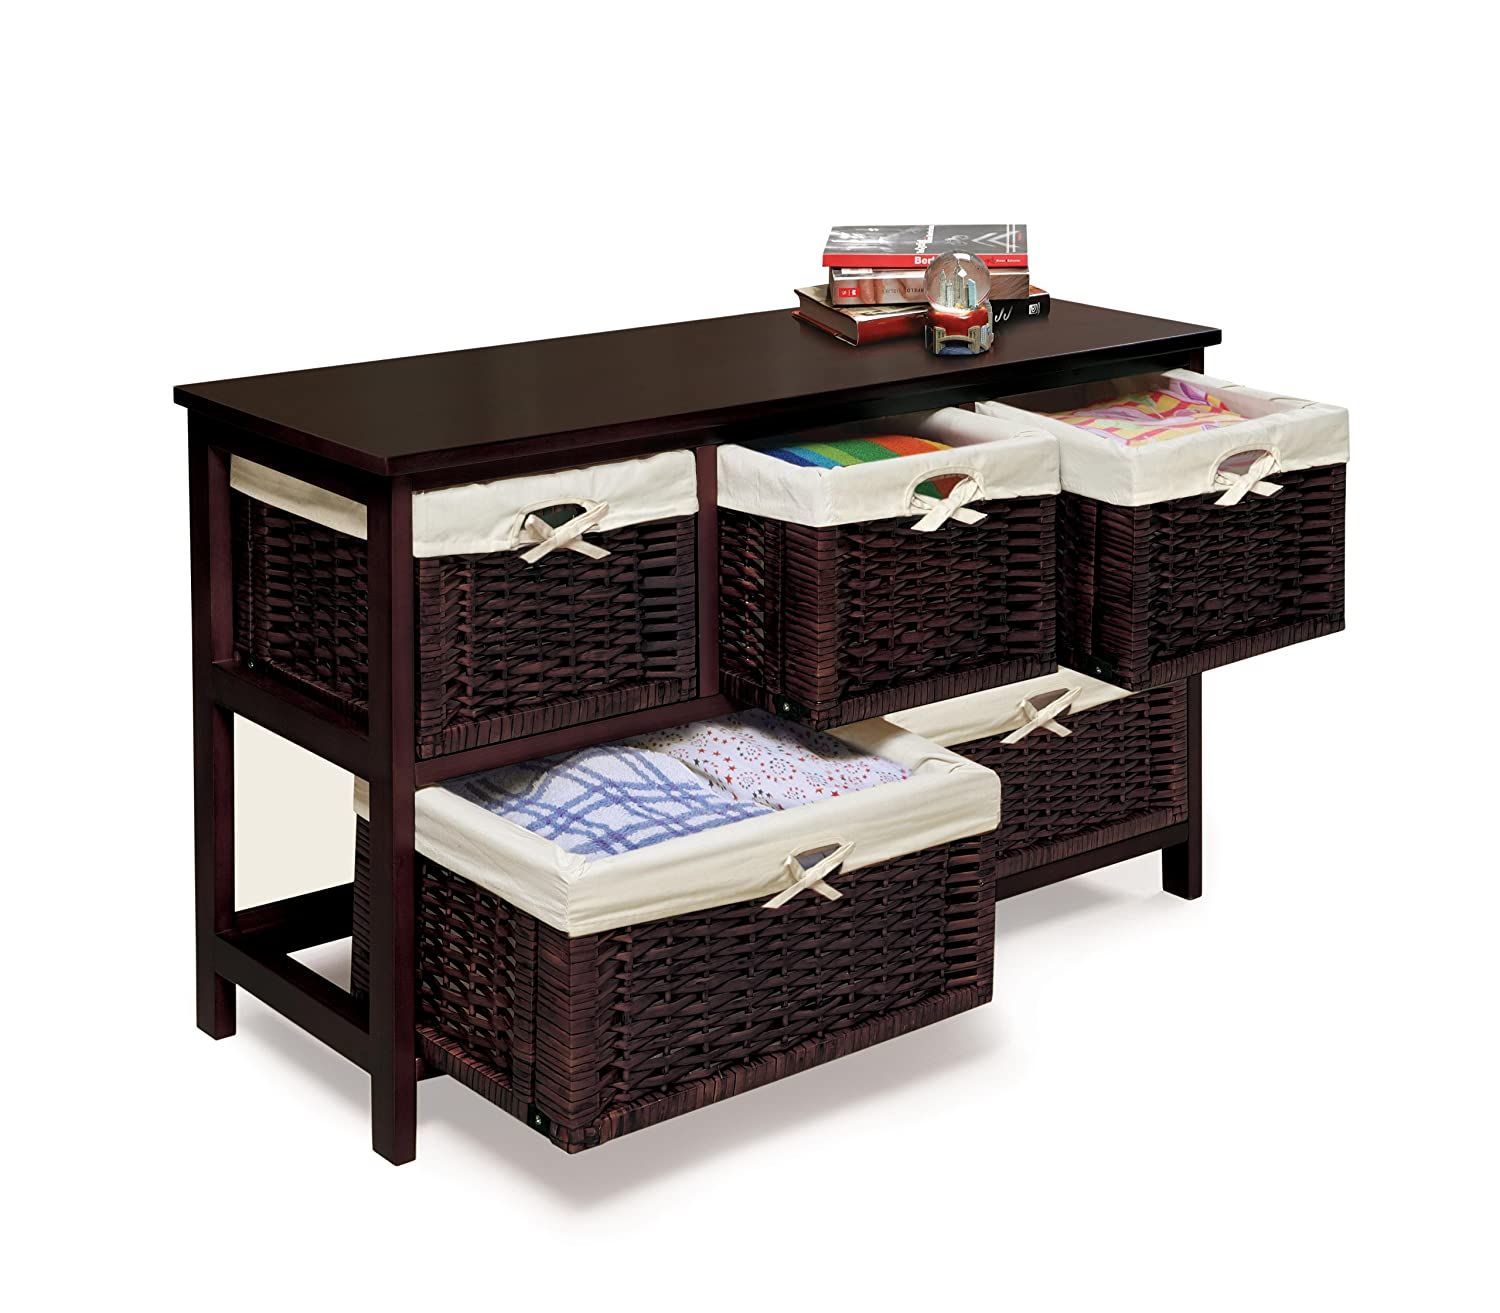 baskets with dp basket al wicker ca espresso dresser five unit amazon badger storage baby